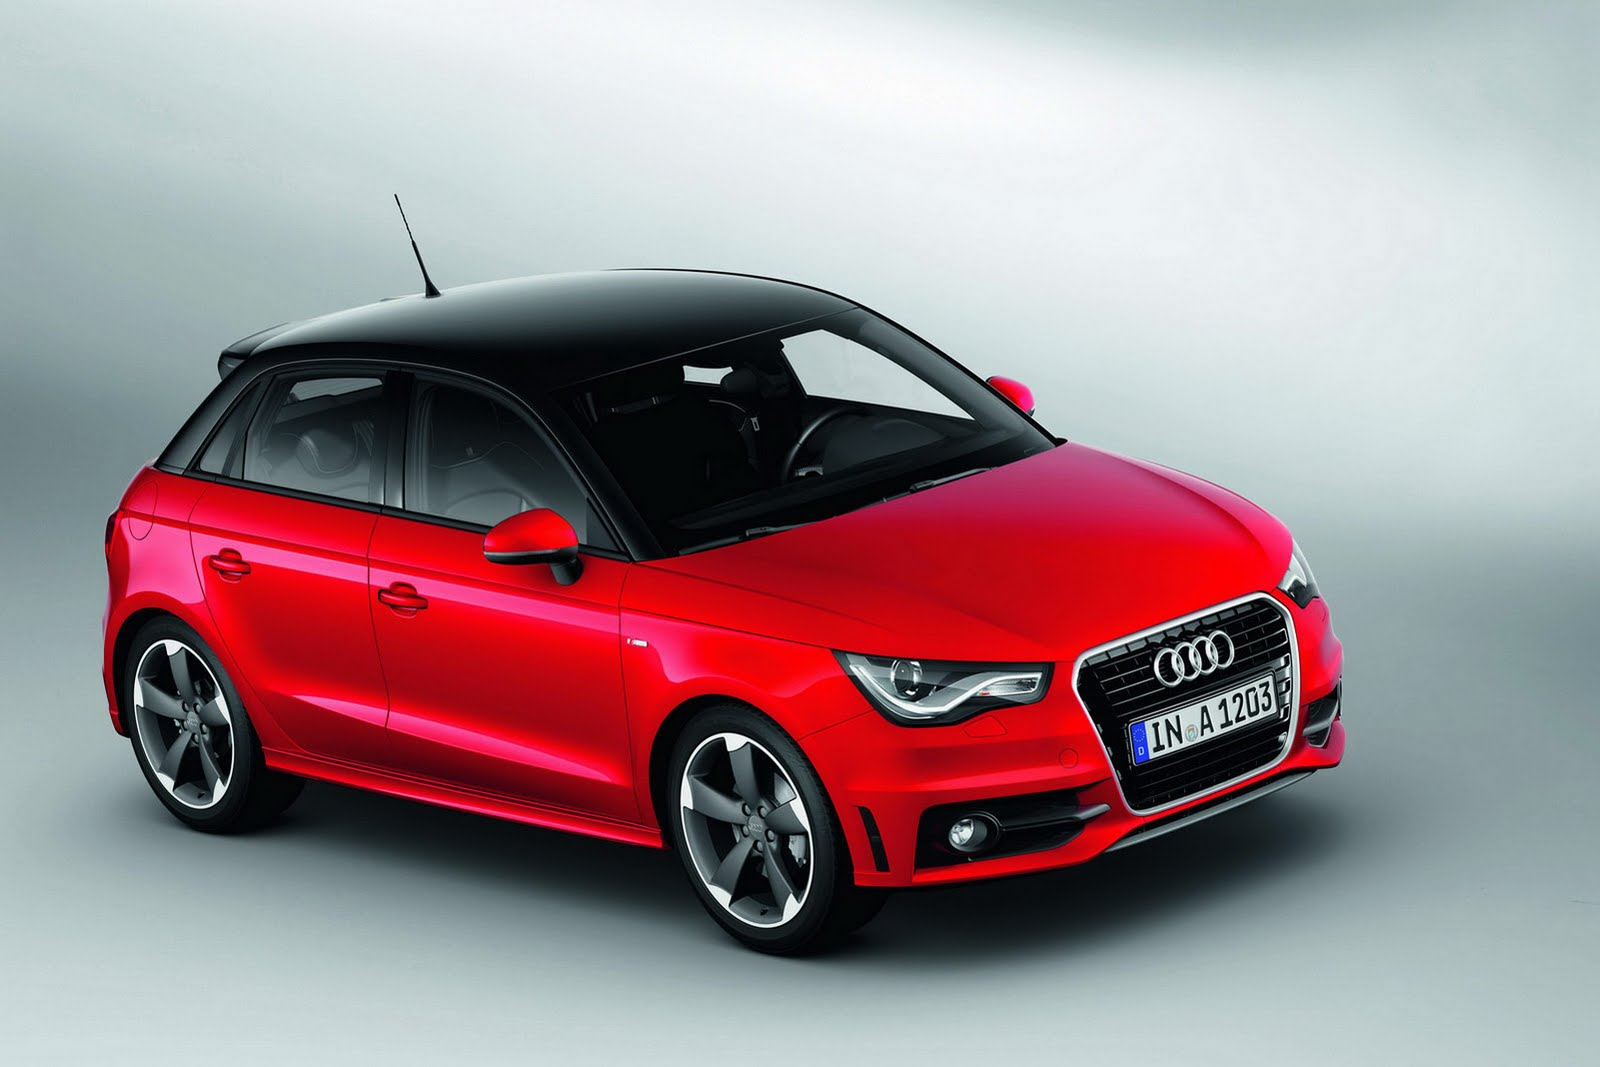 nuova audi a1 sportback immagini ufficiali e dati tecnici. Black Bedroom Furniture Sets. Home Design Ideas